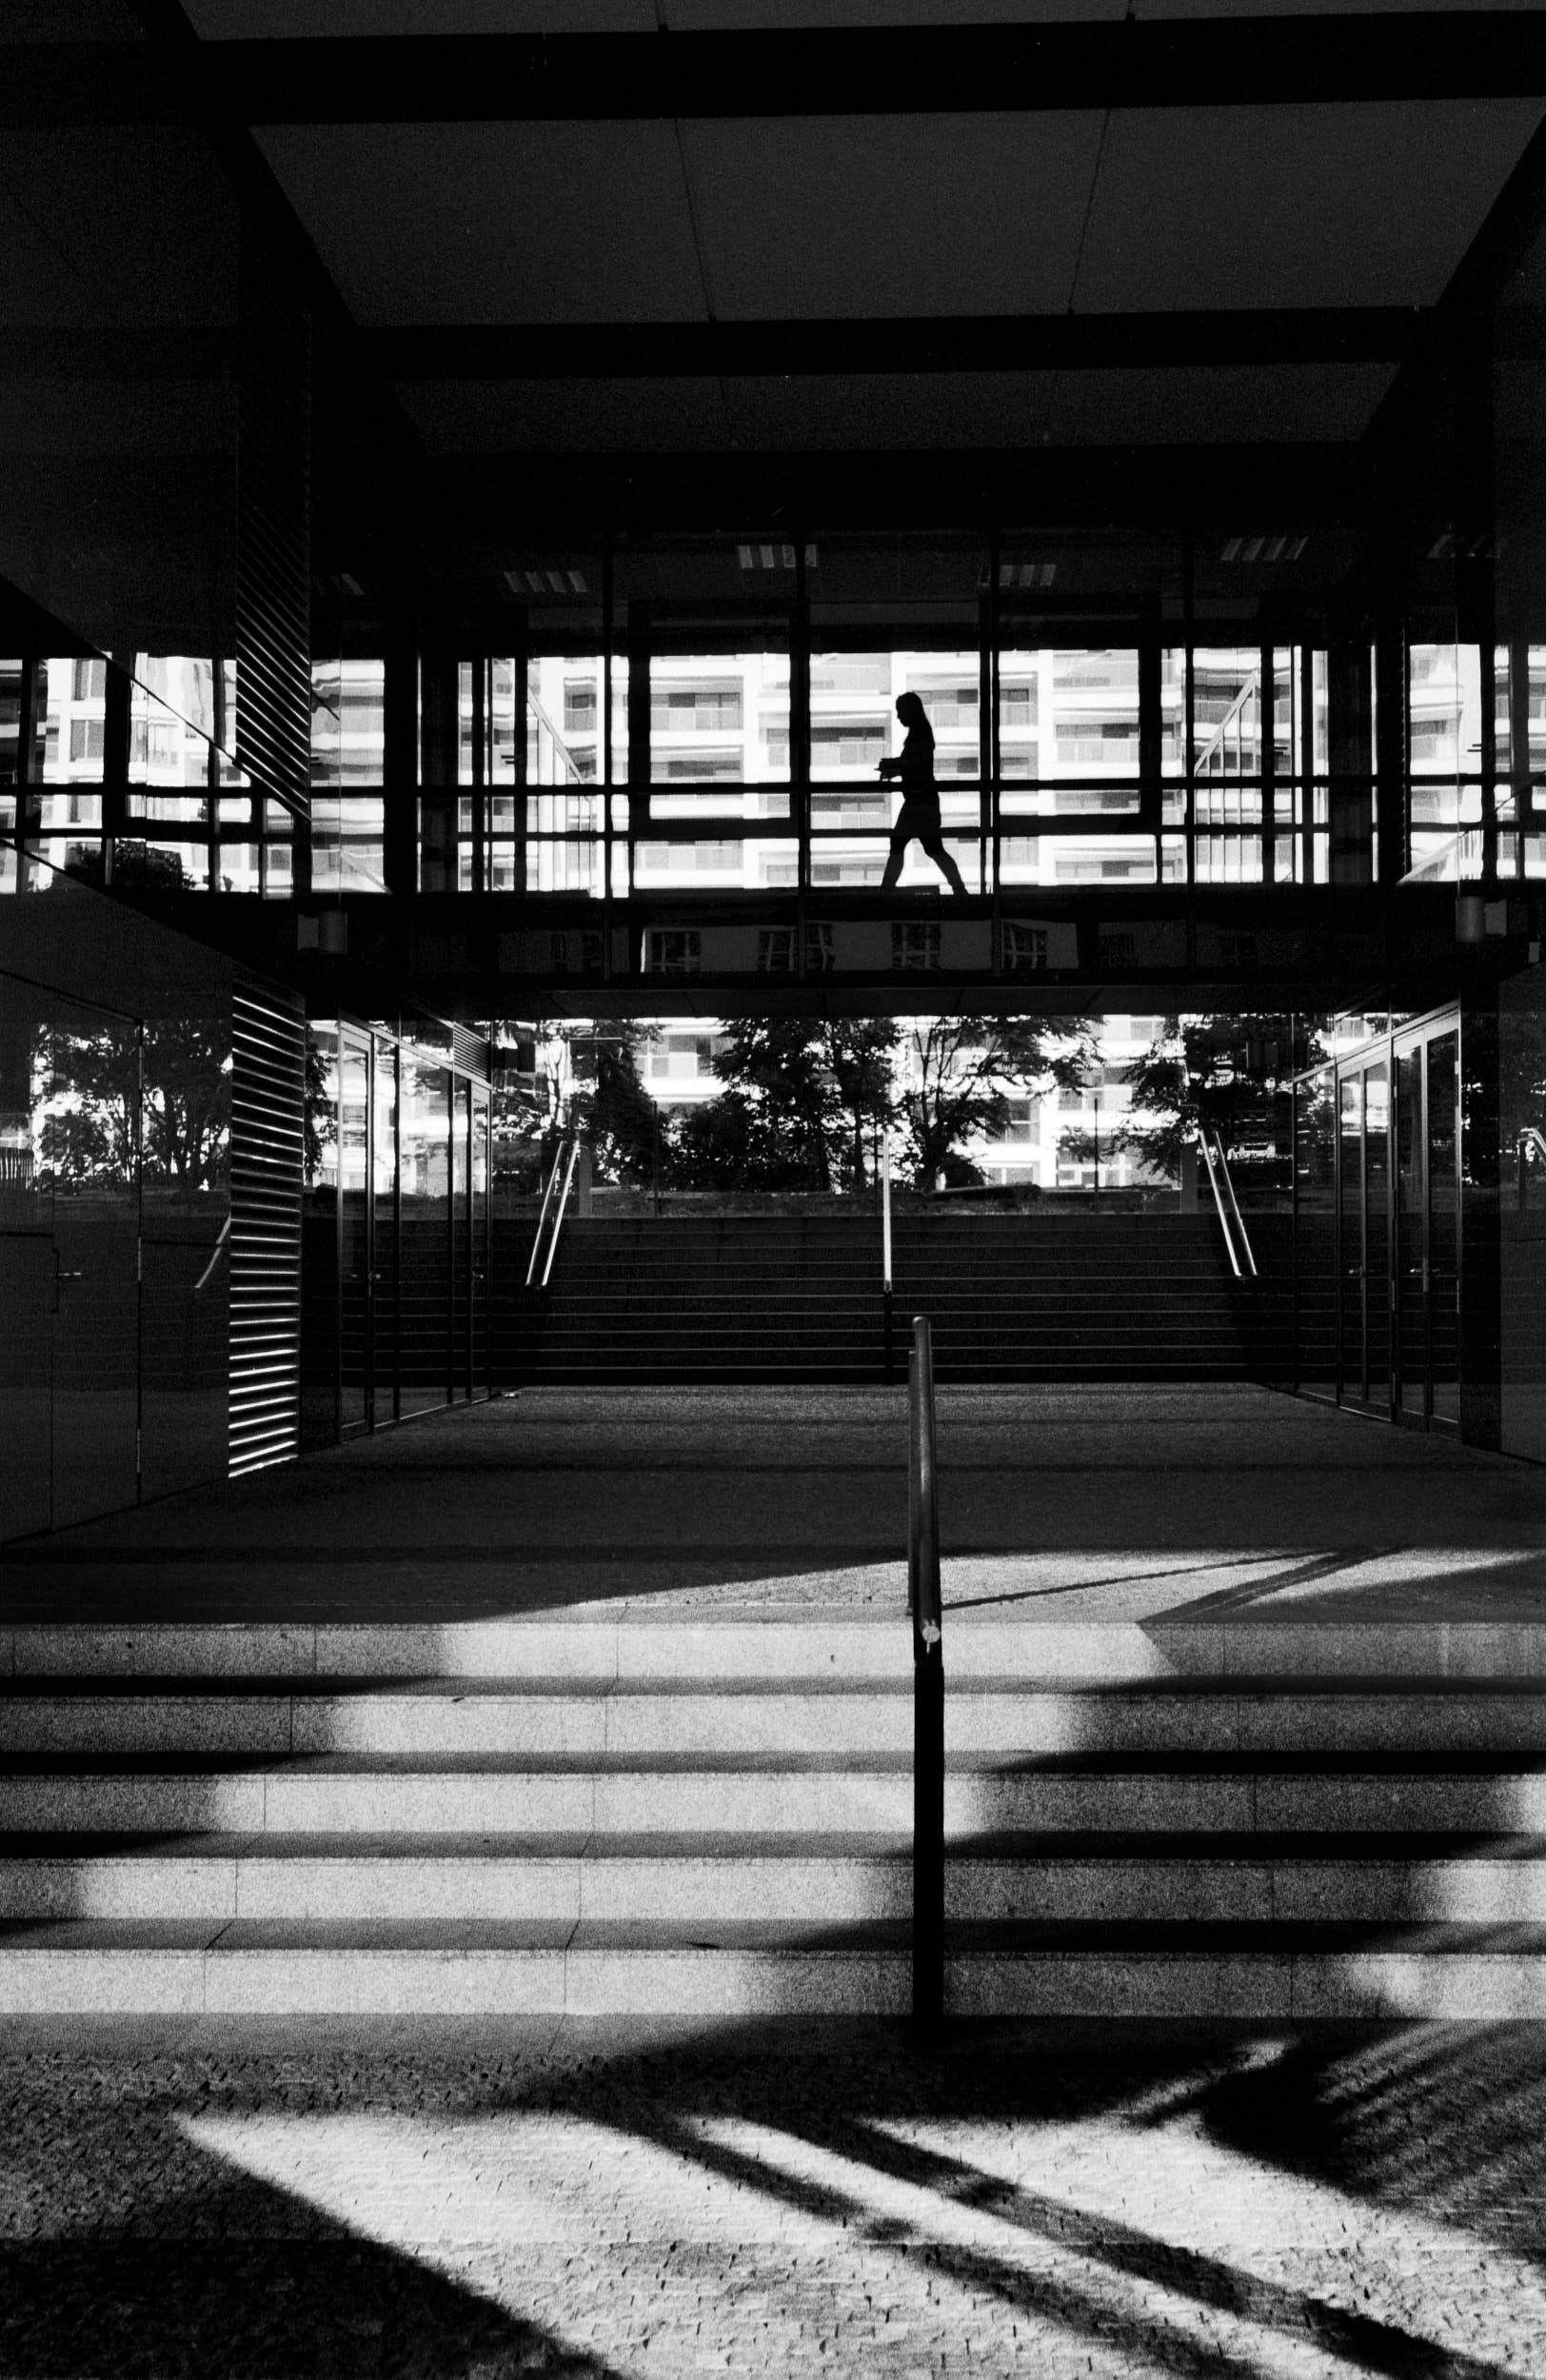 Classic black and white street photography: silhouette of a woman walking through a glass corridor in an office building.